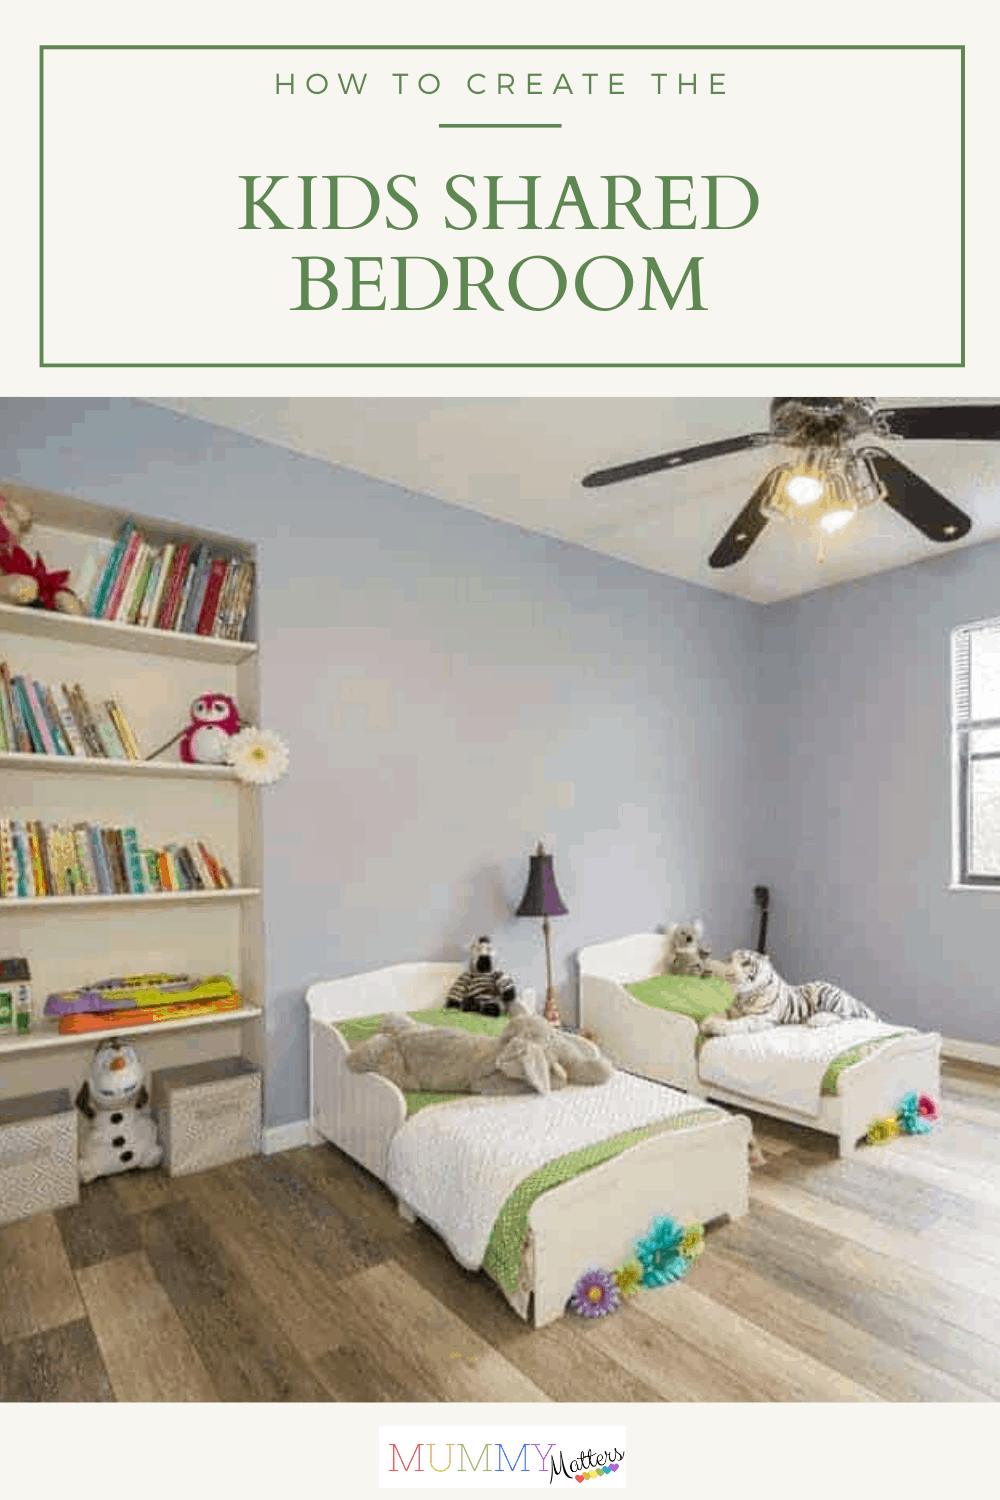 A shared bedroom will help your children bond quickly and teach them to share from an early age, as they will be used to sharing a bedroom.